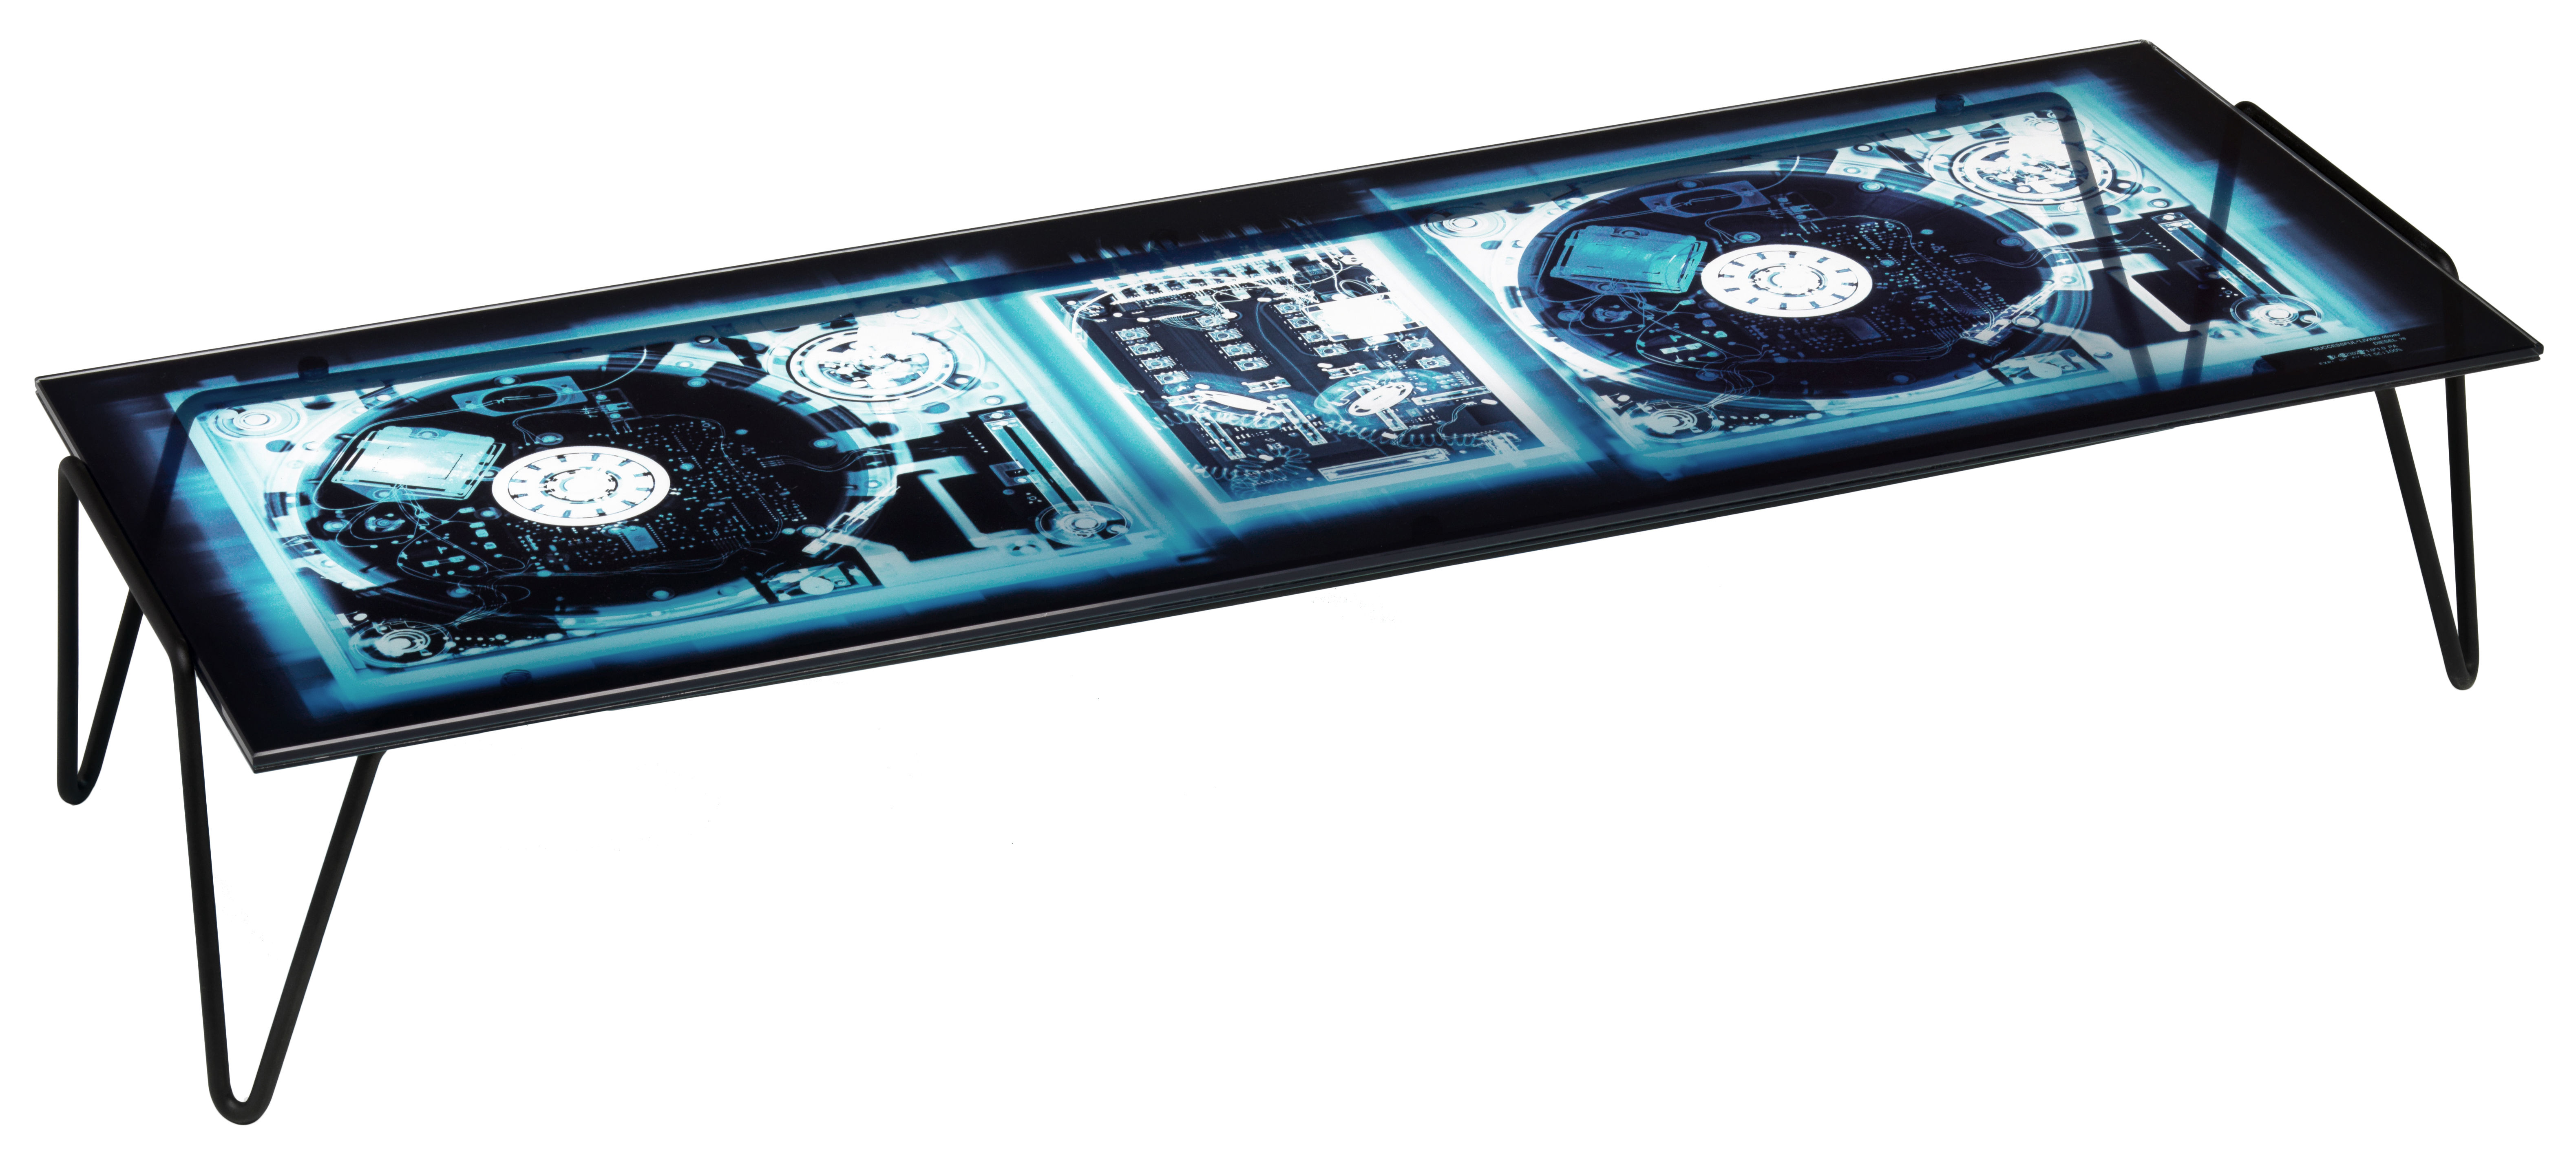 Furniture - Coffee Tables - Xradio 2 Disk Coffee table by Diesel with Moroso - Dj console / Blue - Glass, Lacquered steel